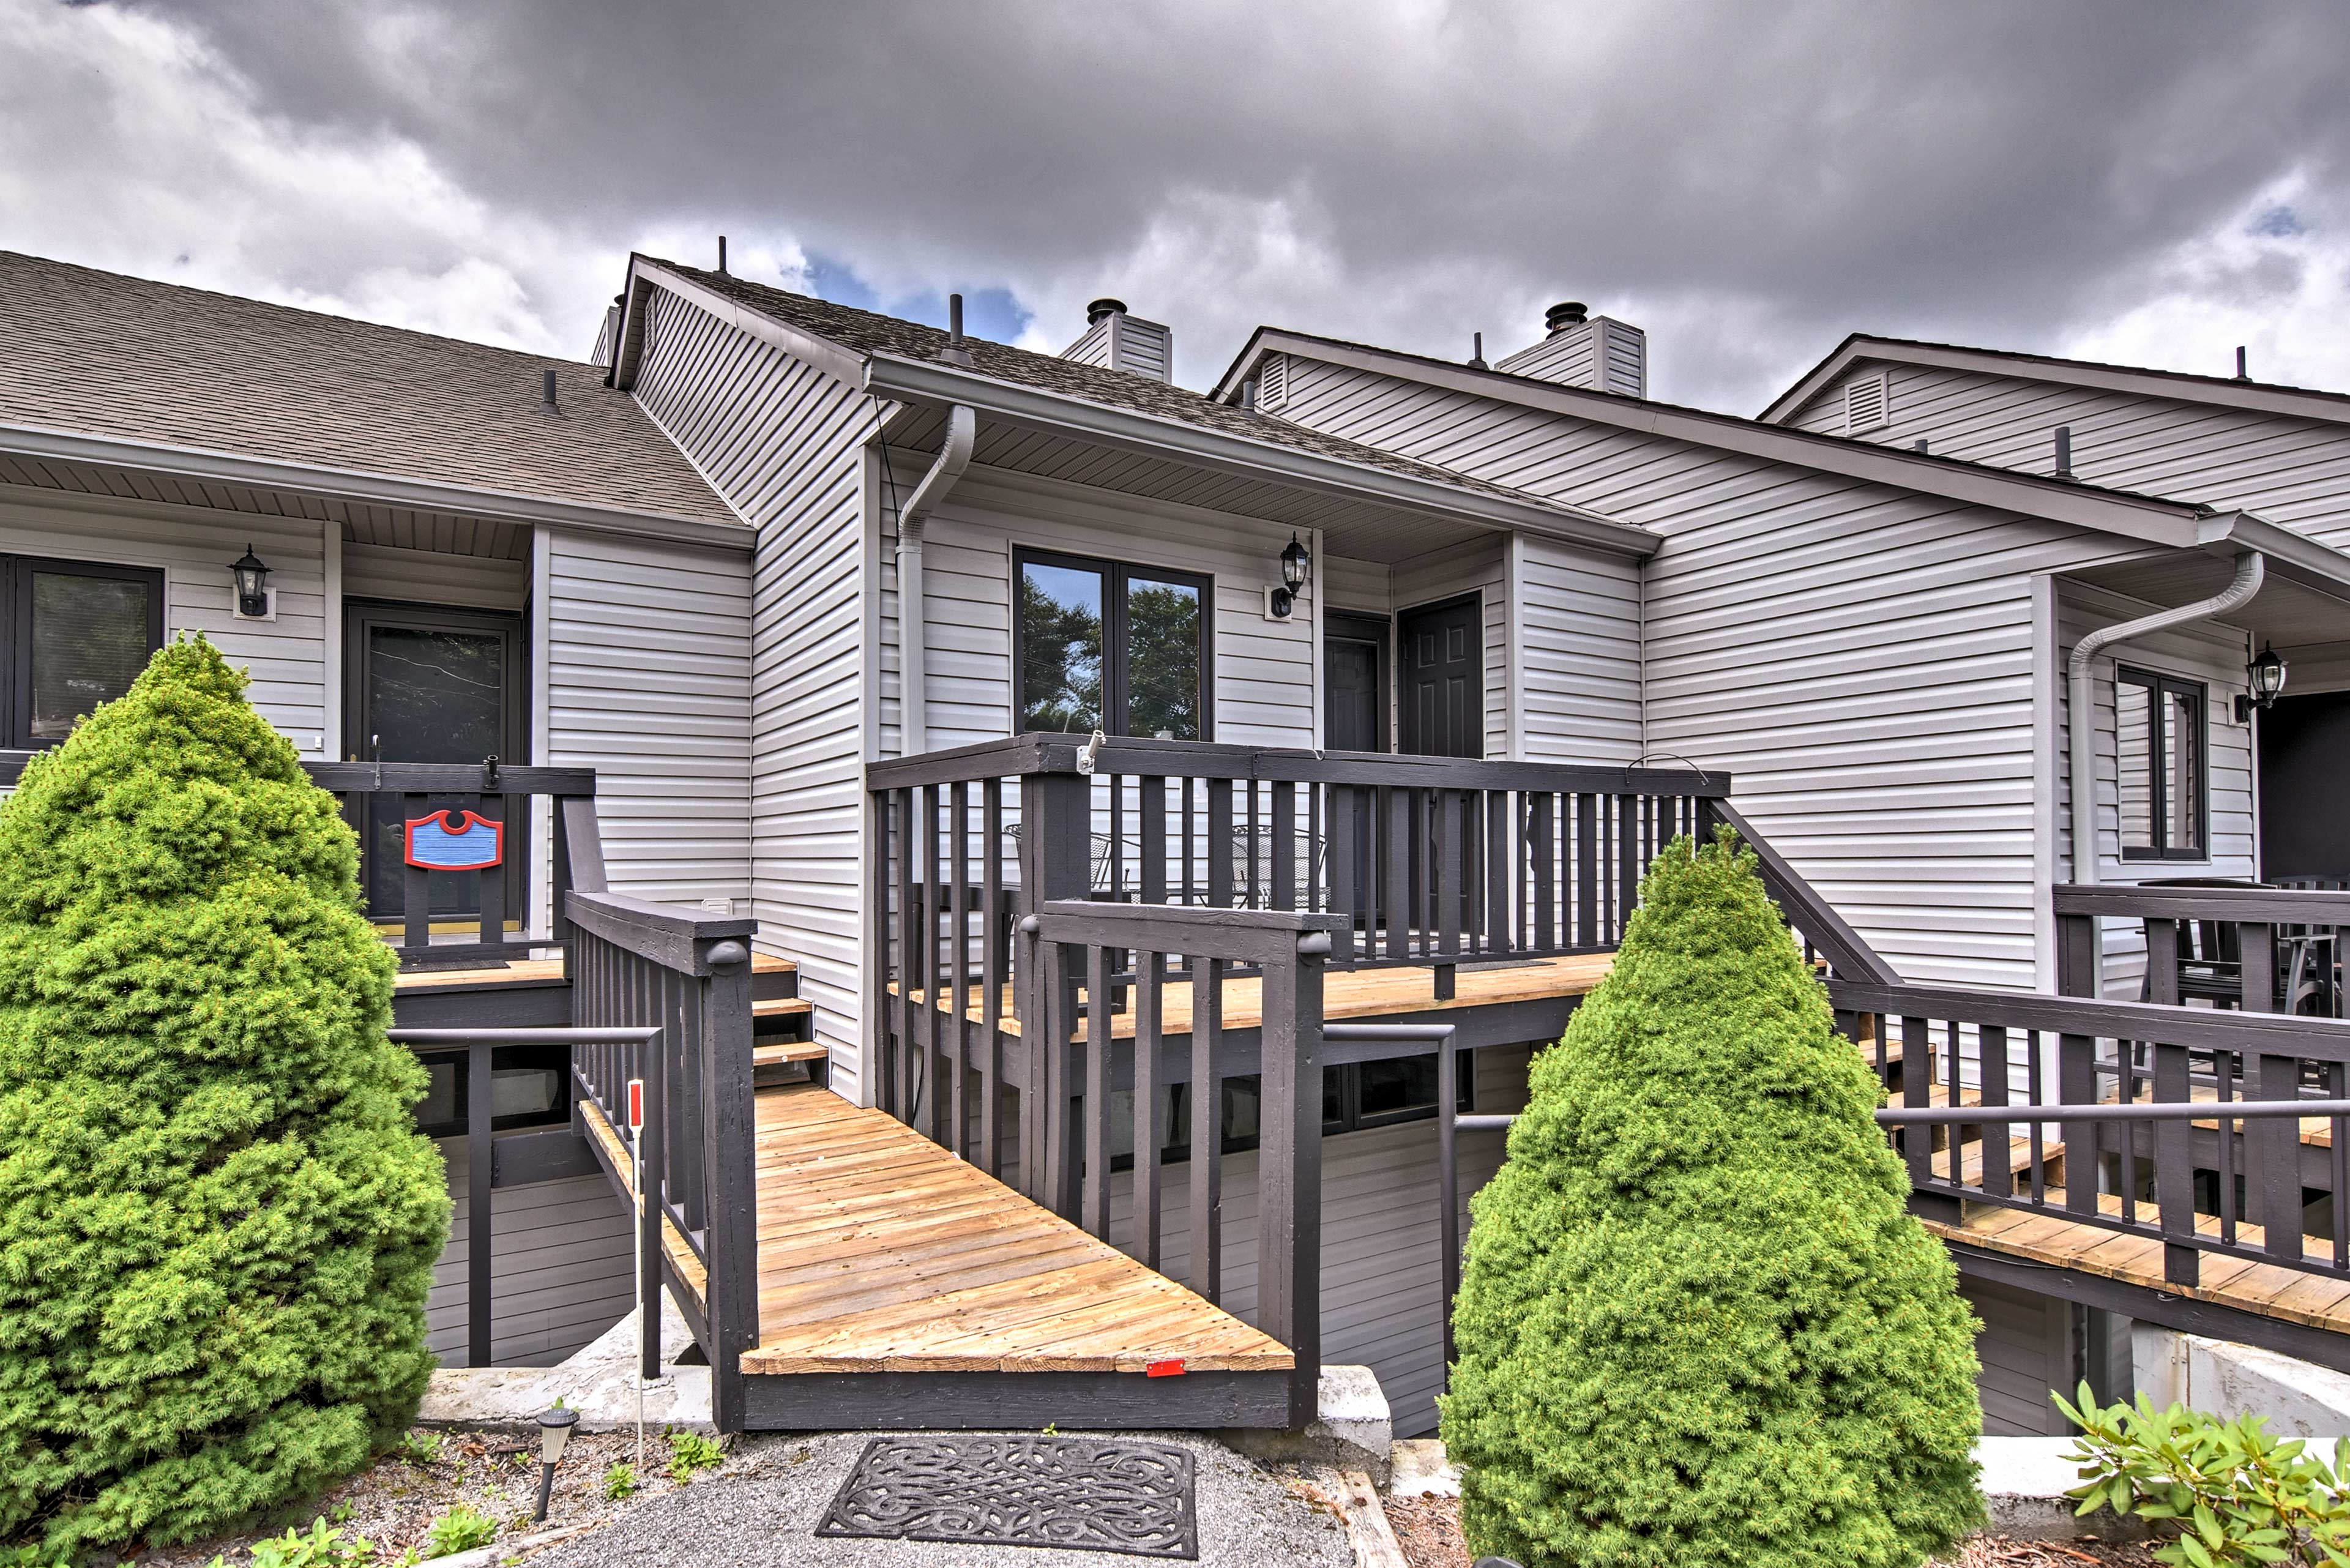 This 2-bedroom, 2.5-bathroom unit boasts 1,200 square feet and room for 7.